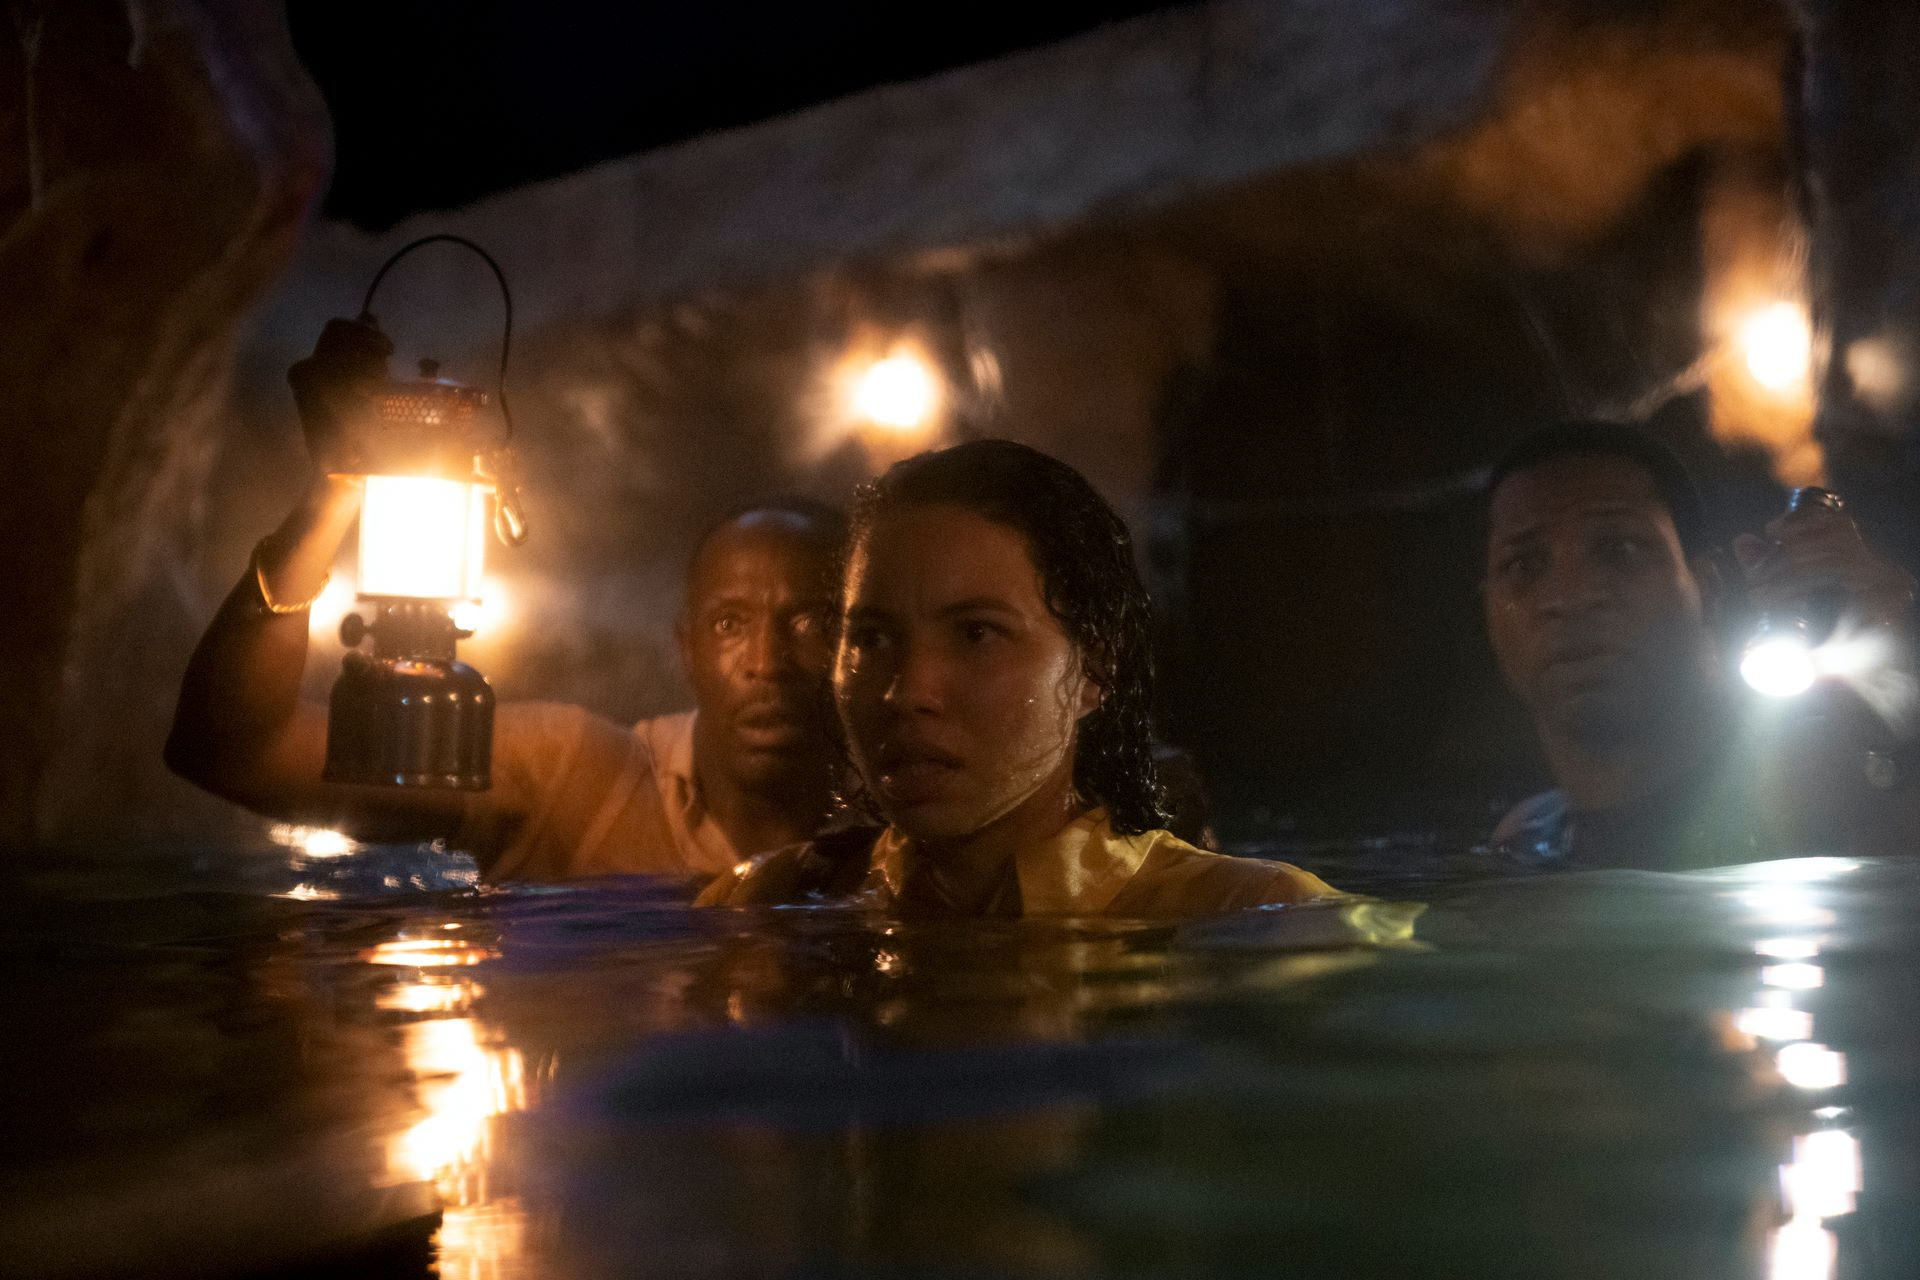 Michael K. Williams, Jurnee Smollet, and Jonathan Majors in 'Lovecraft Country'